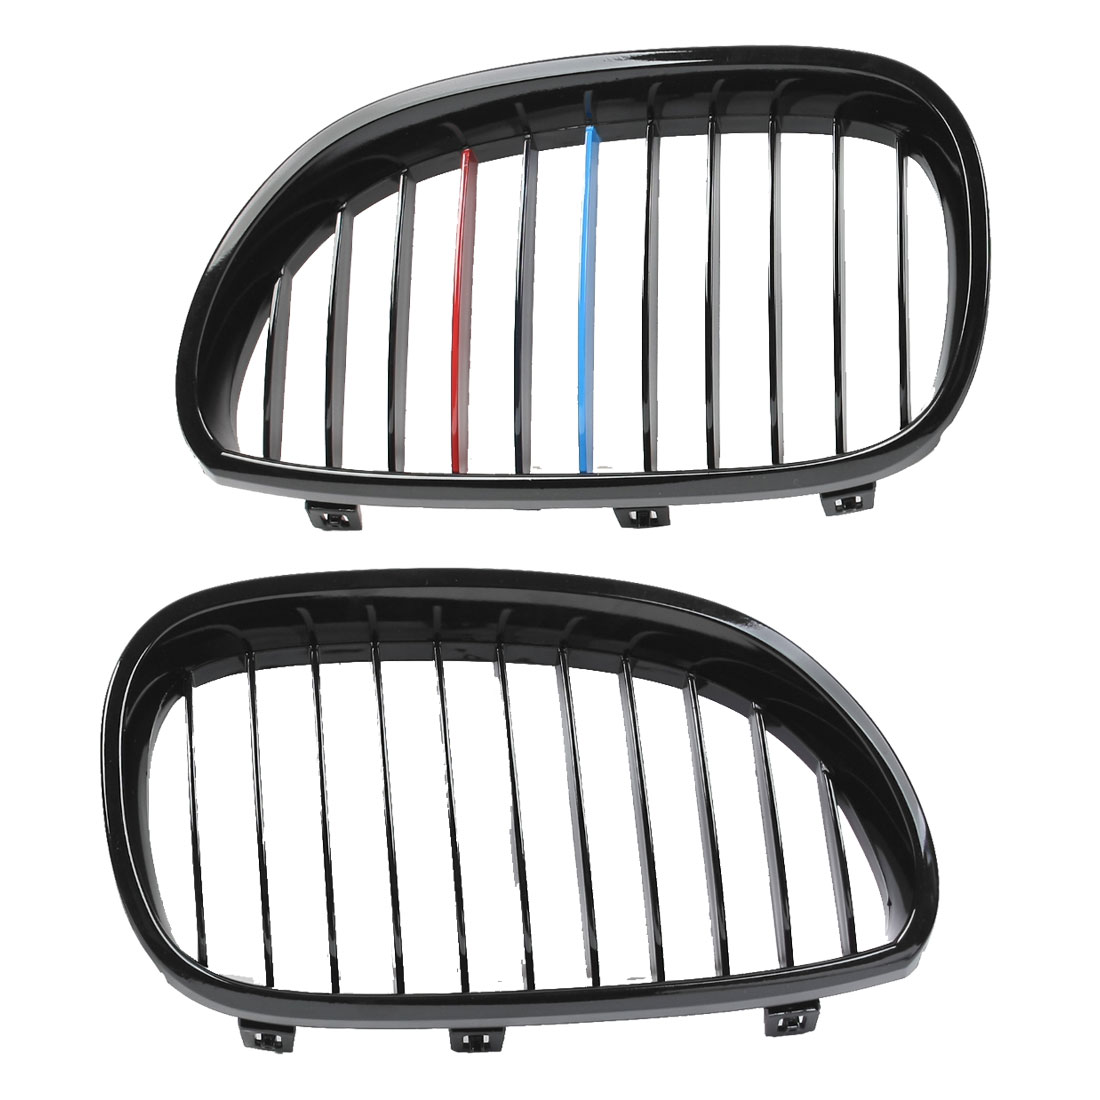 2 Pcs Bumper Right Left Kidney Grille for 2004-2010 BMW 525i